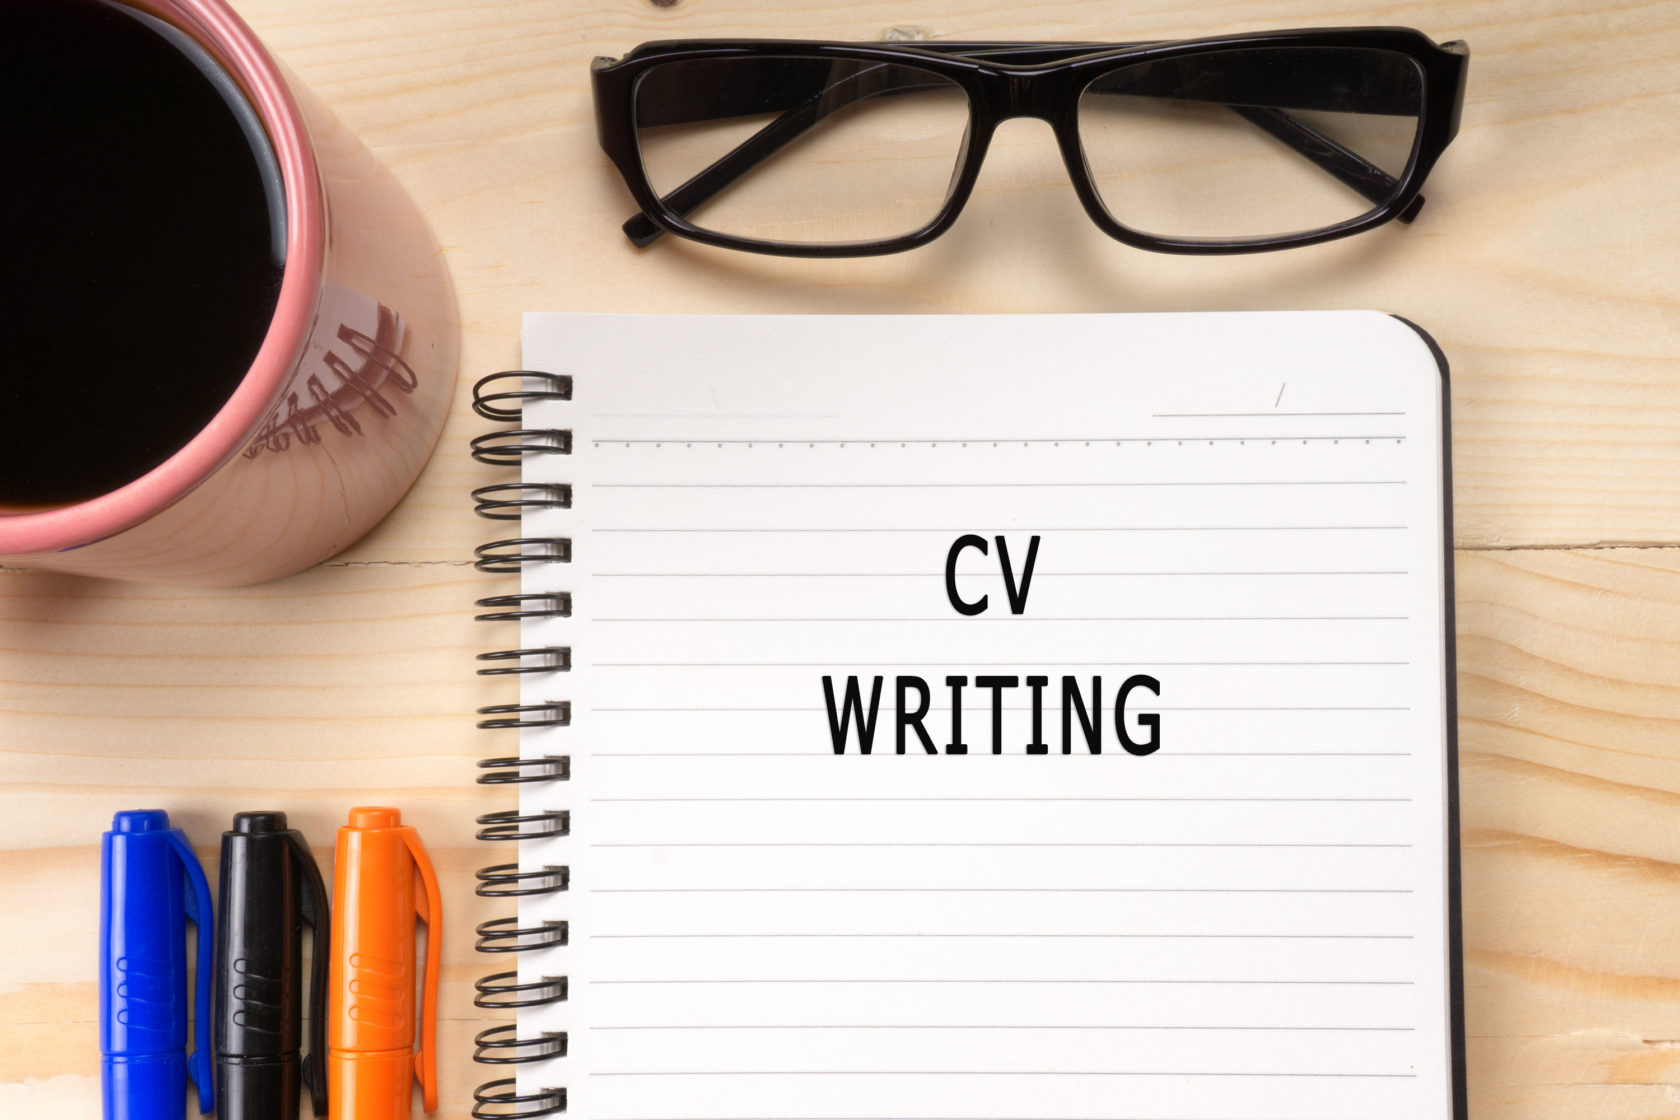 Contractor CV's – Tips and Advice on How to Draft the Most Effective Contractor CV.